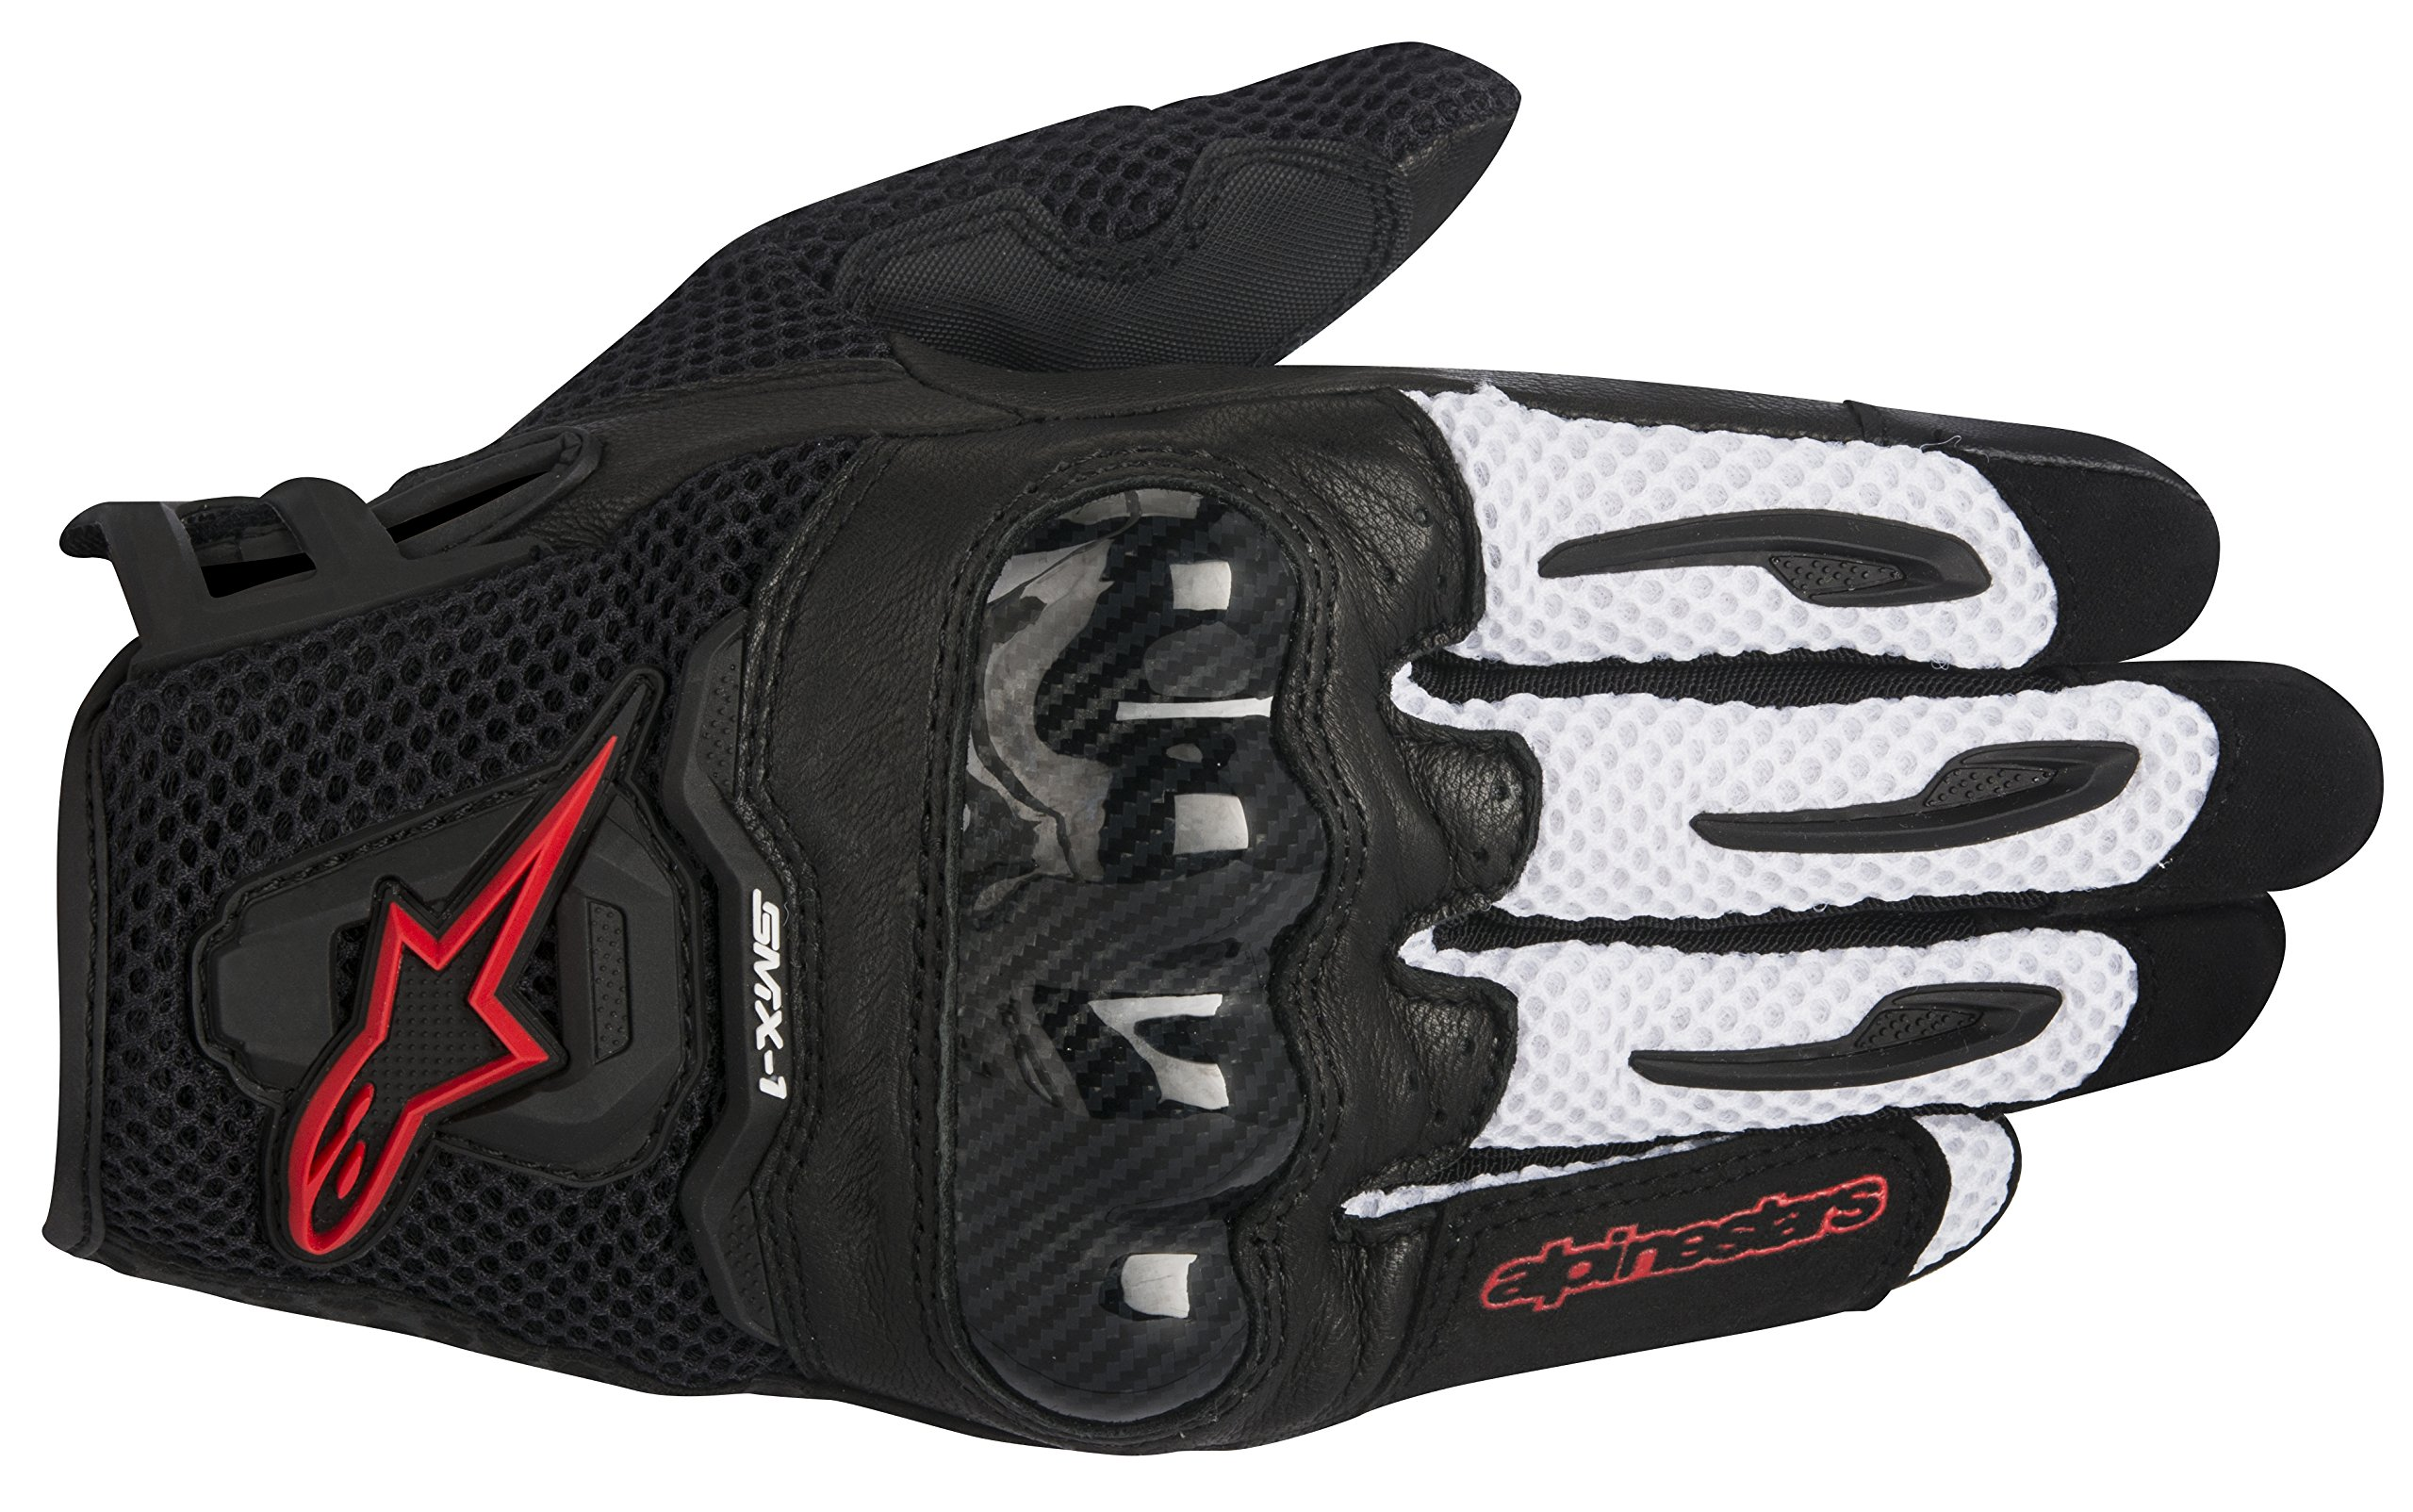 Alpinestars SMX-1 Air Men's Street Motorcycle Gloves - Black/Red/X-Large by Alpinestars